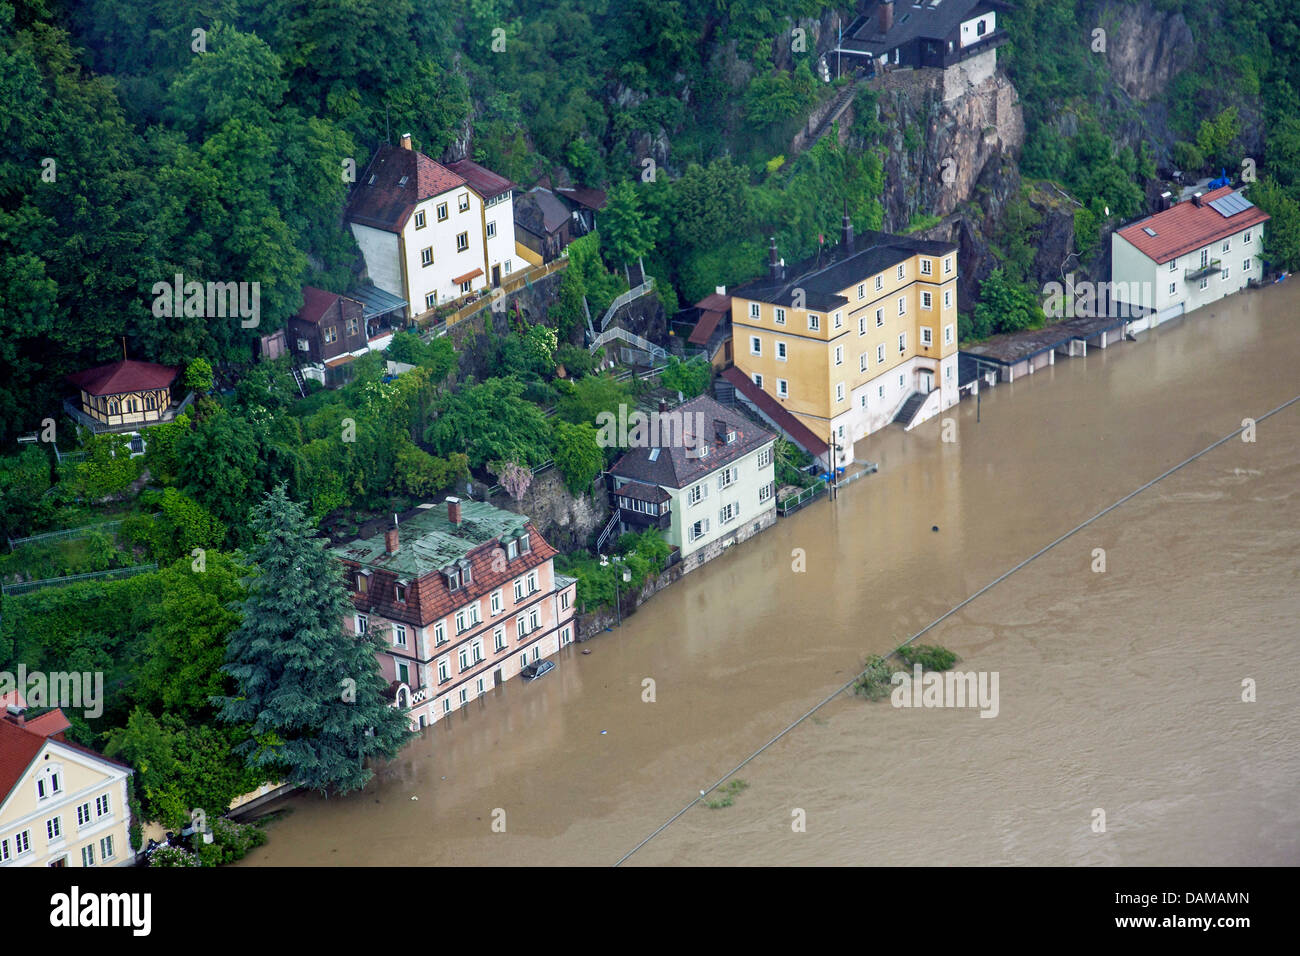 street B 12 at river danube flooded in June 2013, Germany, Bavaria, Passau - Stock Image